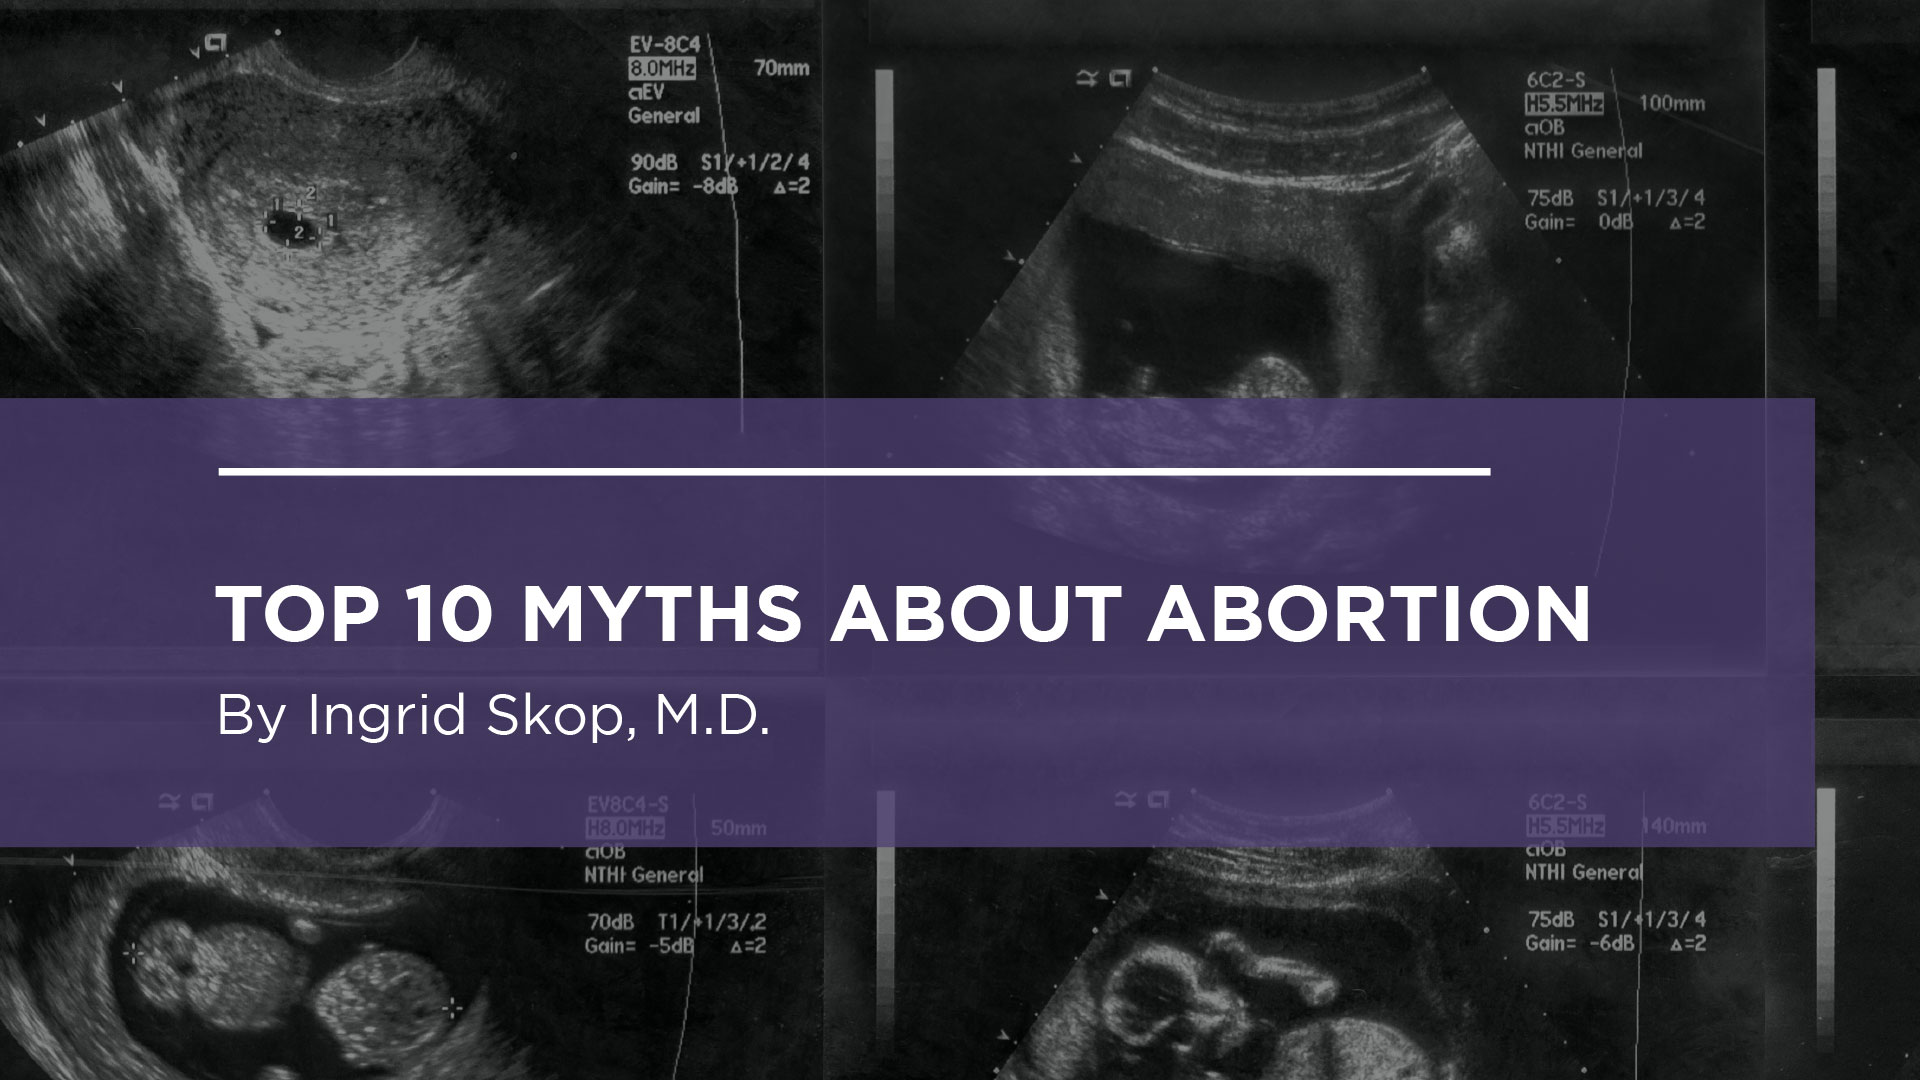 Top 10 Myths About Abortion